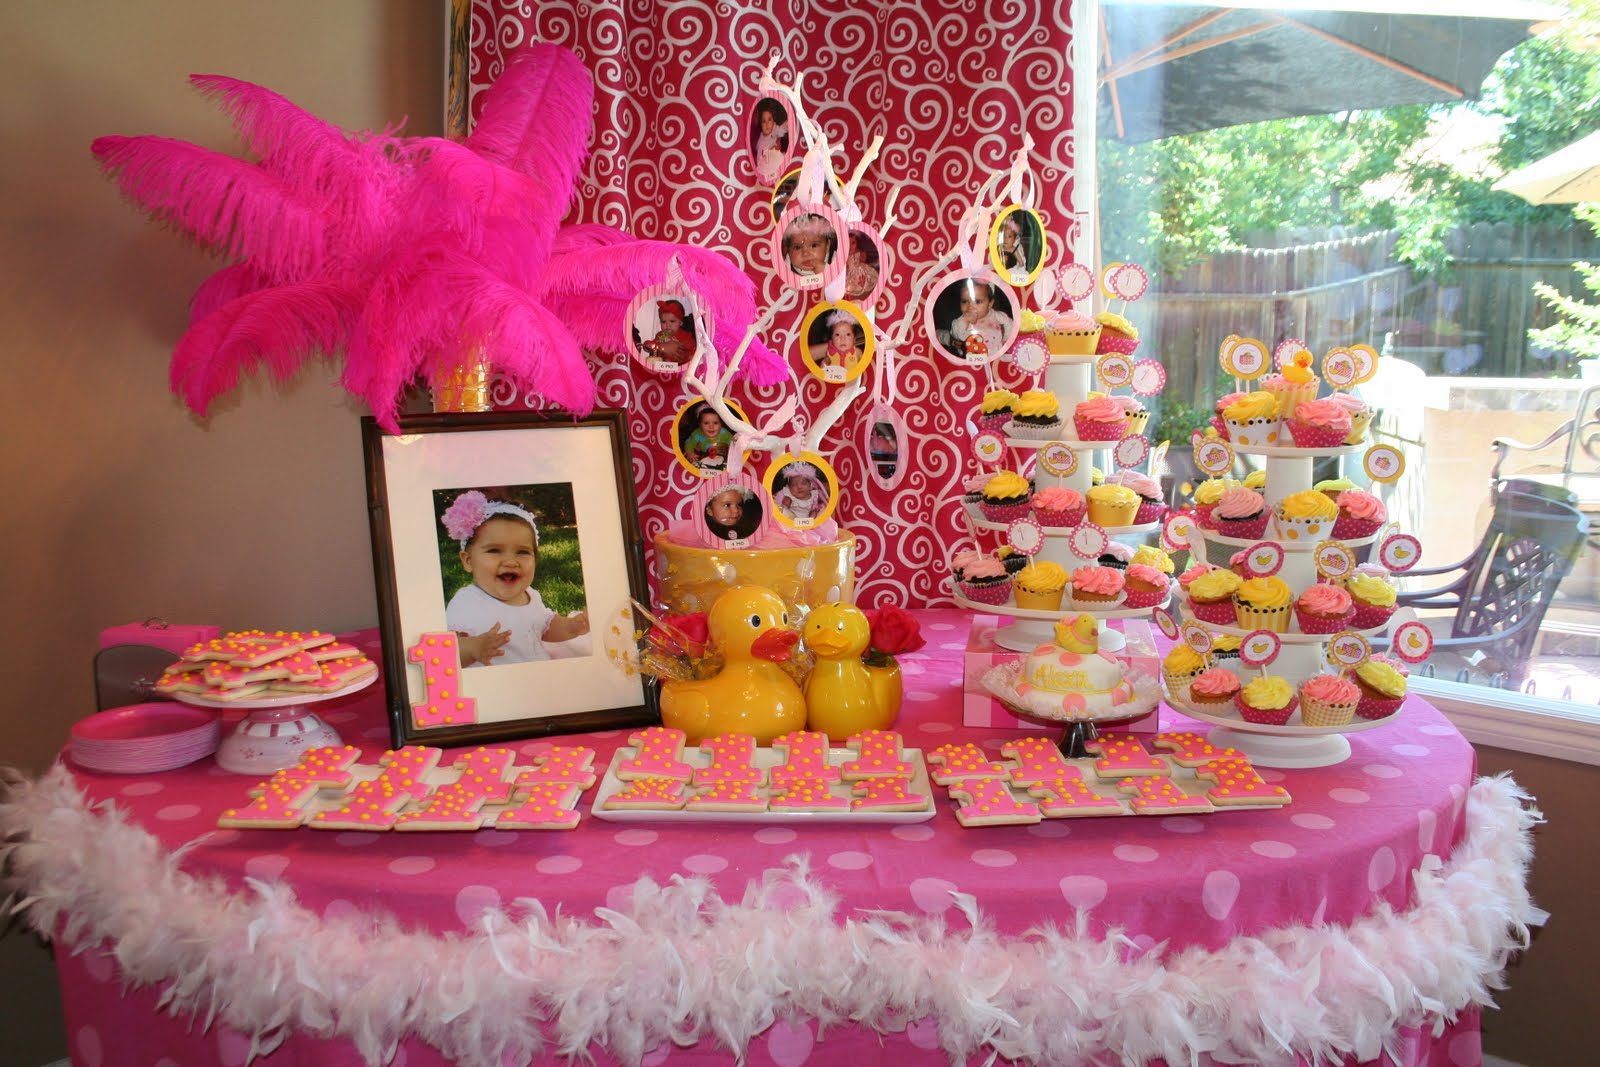 jonesyfor3 1 rubber duckee pink and yellow 1st birthday party